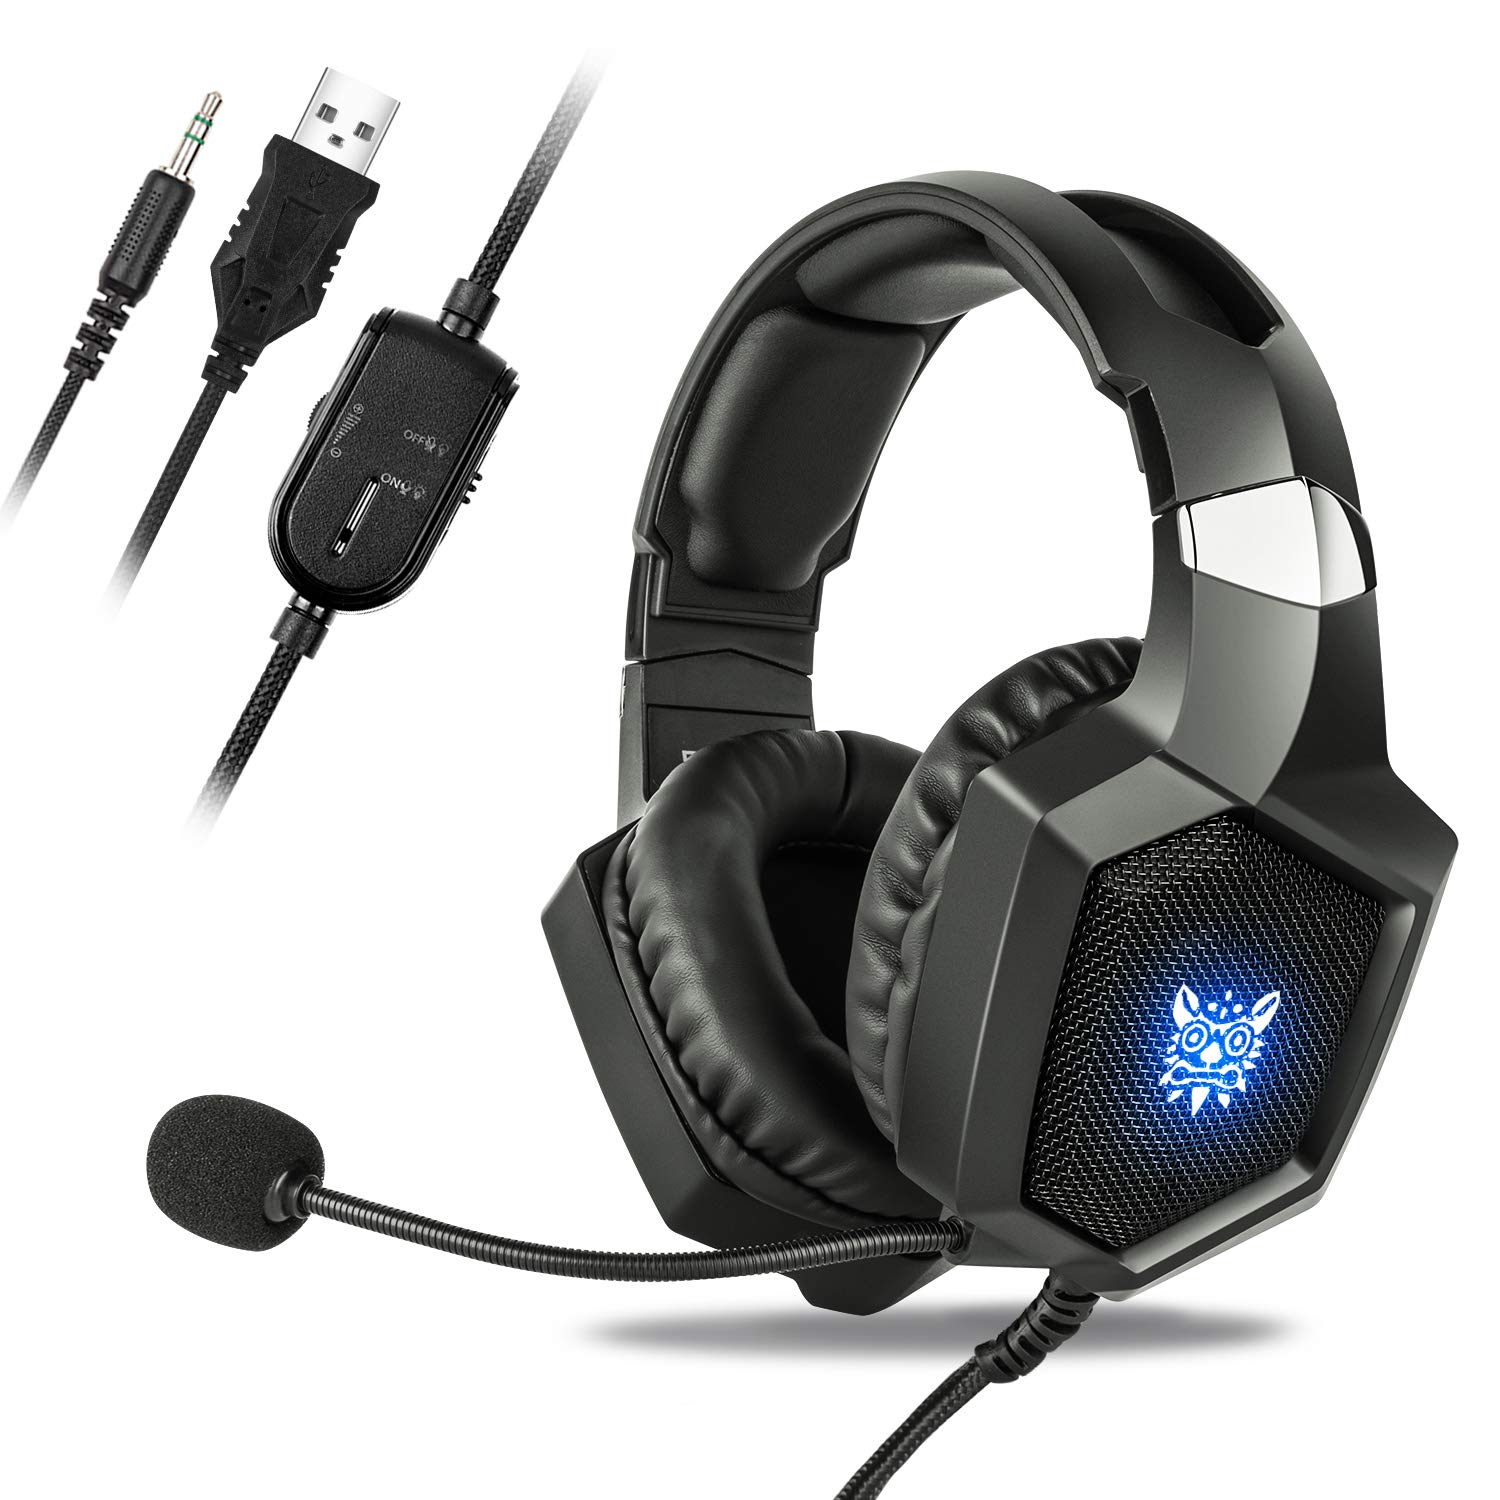 Choyur K8 Gaming Headset Compatible Xbox One, PS4, PC, Controller, Noise Cancelling Over Ear Headphones with Mic, RGB Light Bass Surround Soft Memory Earmuffs for Computer Laptop Mac Switch Game